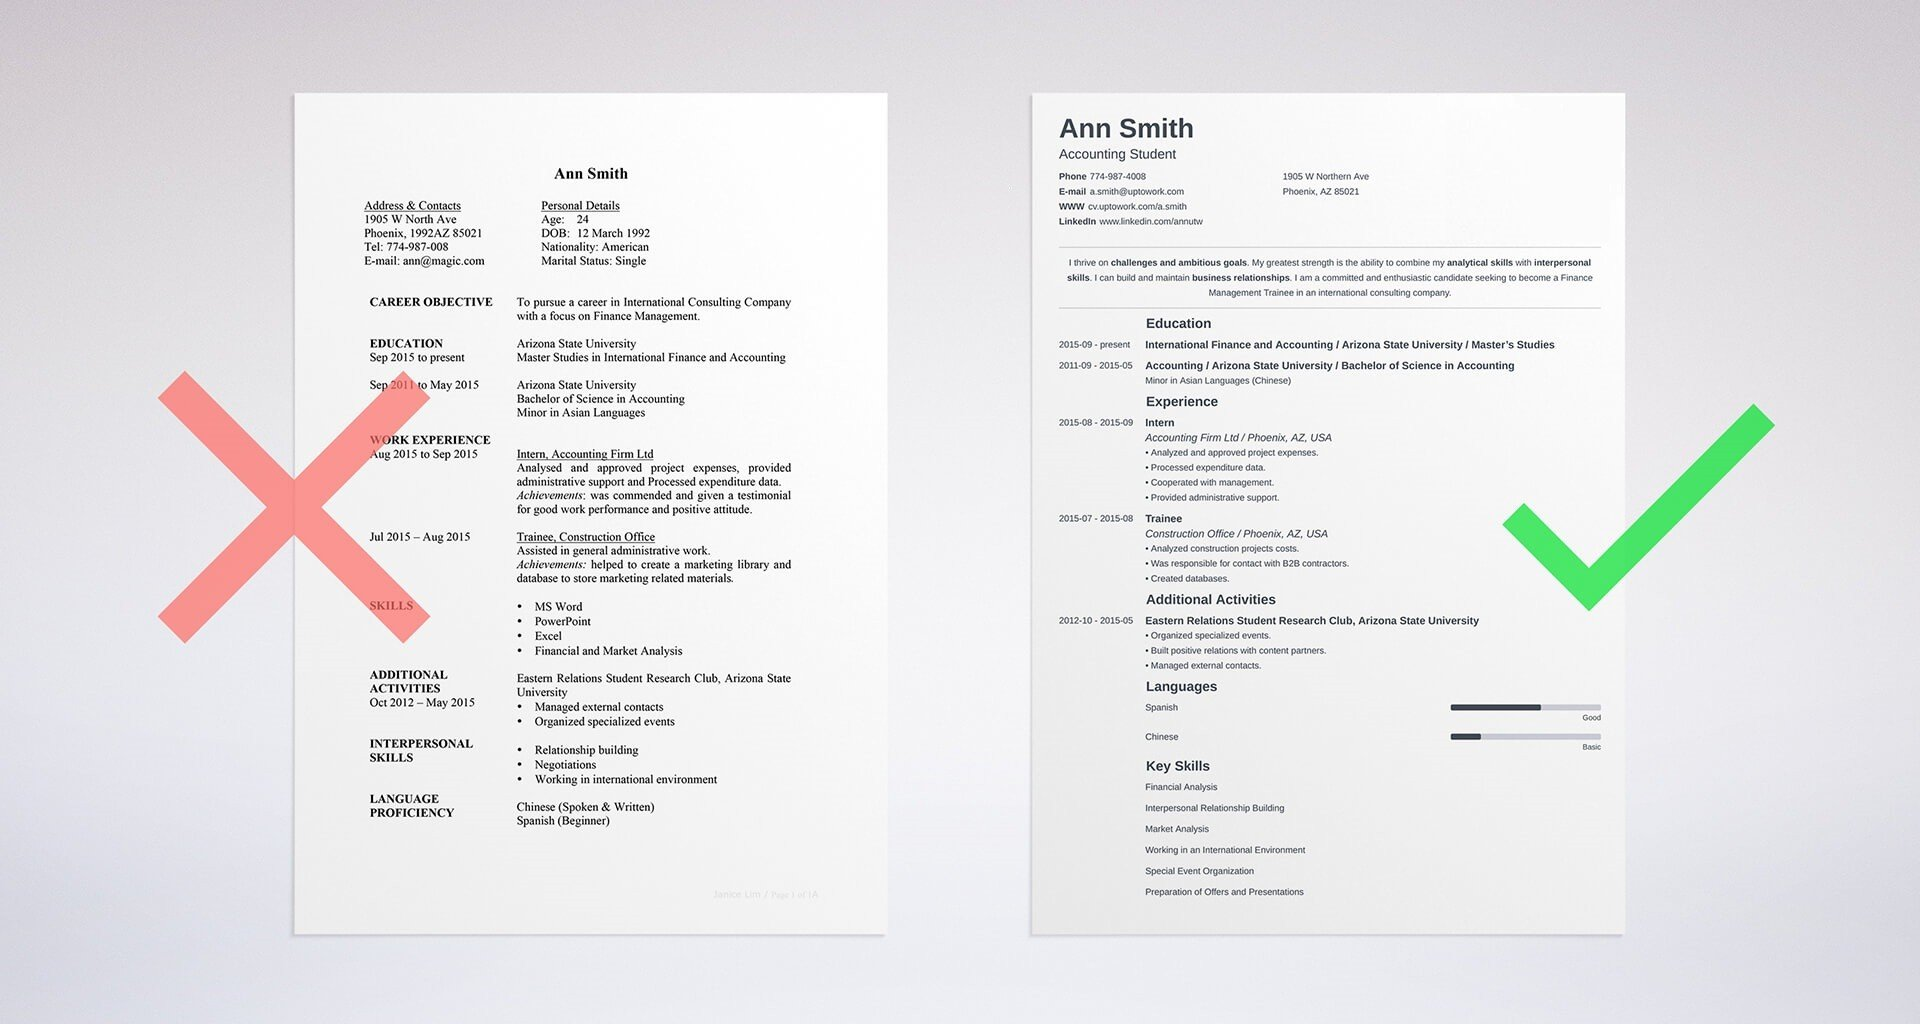 best resume tips tricks writing advice samples with simple professional template free Resume Advice With Resume Writing